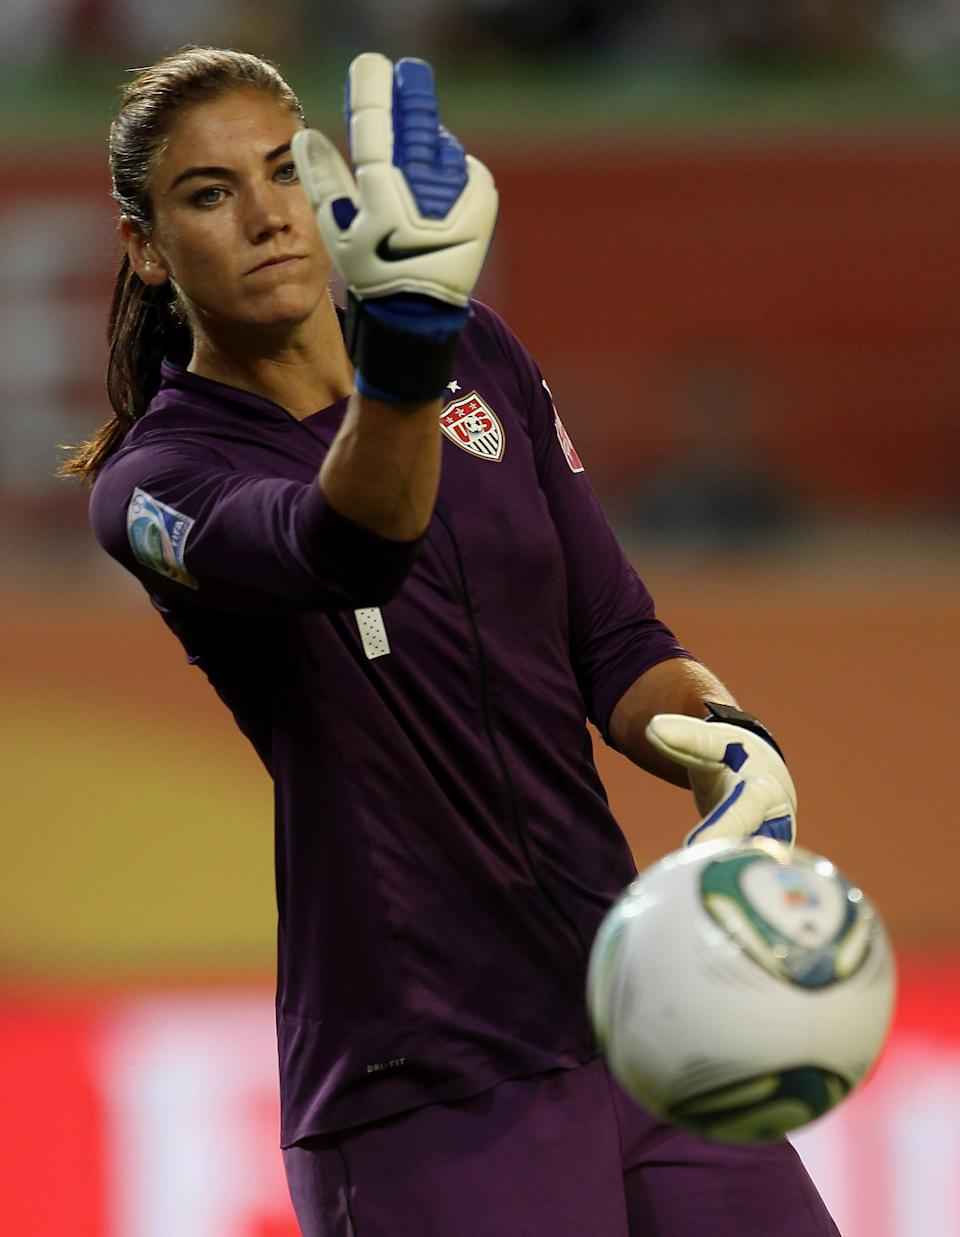 Hope Solo of USA during the FIFA Women's World Cup 2011 between Sweden and USA at the Arena In Allerpark on July 6, 2011 in Wolfsburg, Germany. (Photo by Scott Heavey/Getty Images)